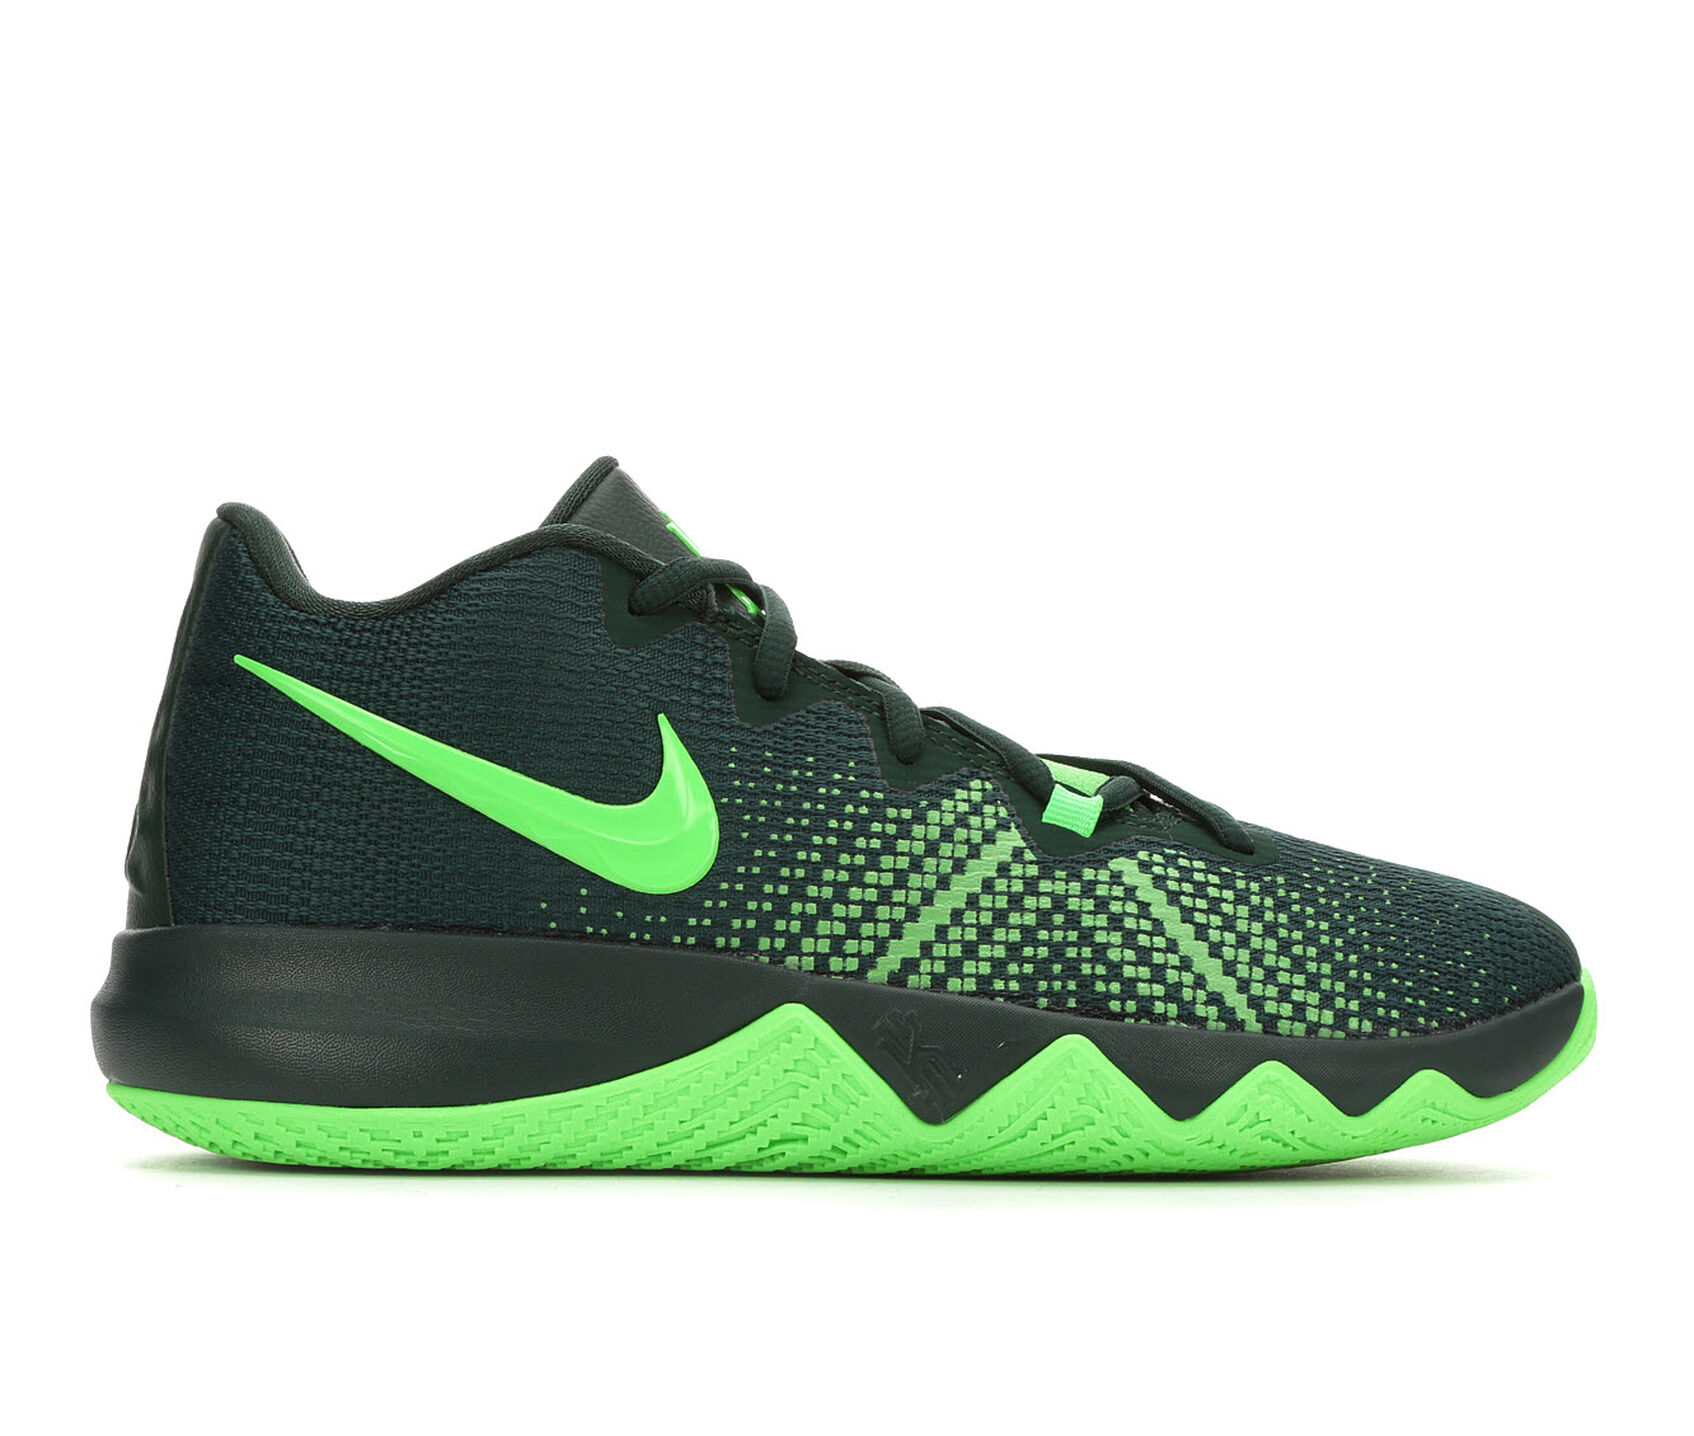 cheap for discount 5faa7 71a35 Boys  Nike Big Kid Kyrie Flytrap High Top Basketball Shoes   Shoe ...